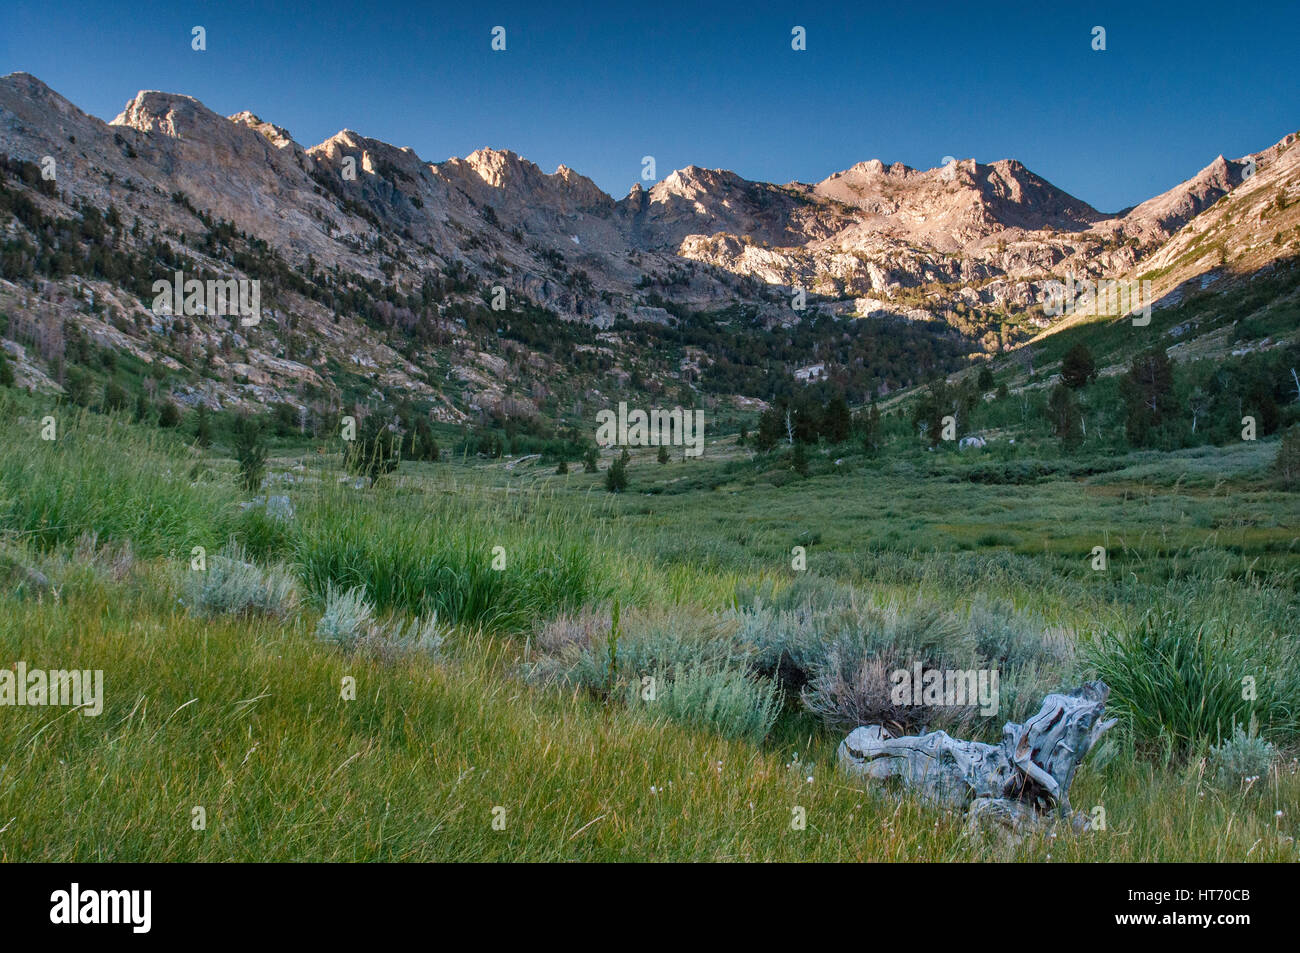 Lamoille Canyon in Ruby Mountains, near Elko, Nevada, USA - Stock Image